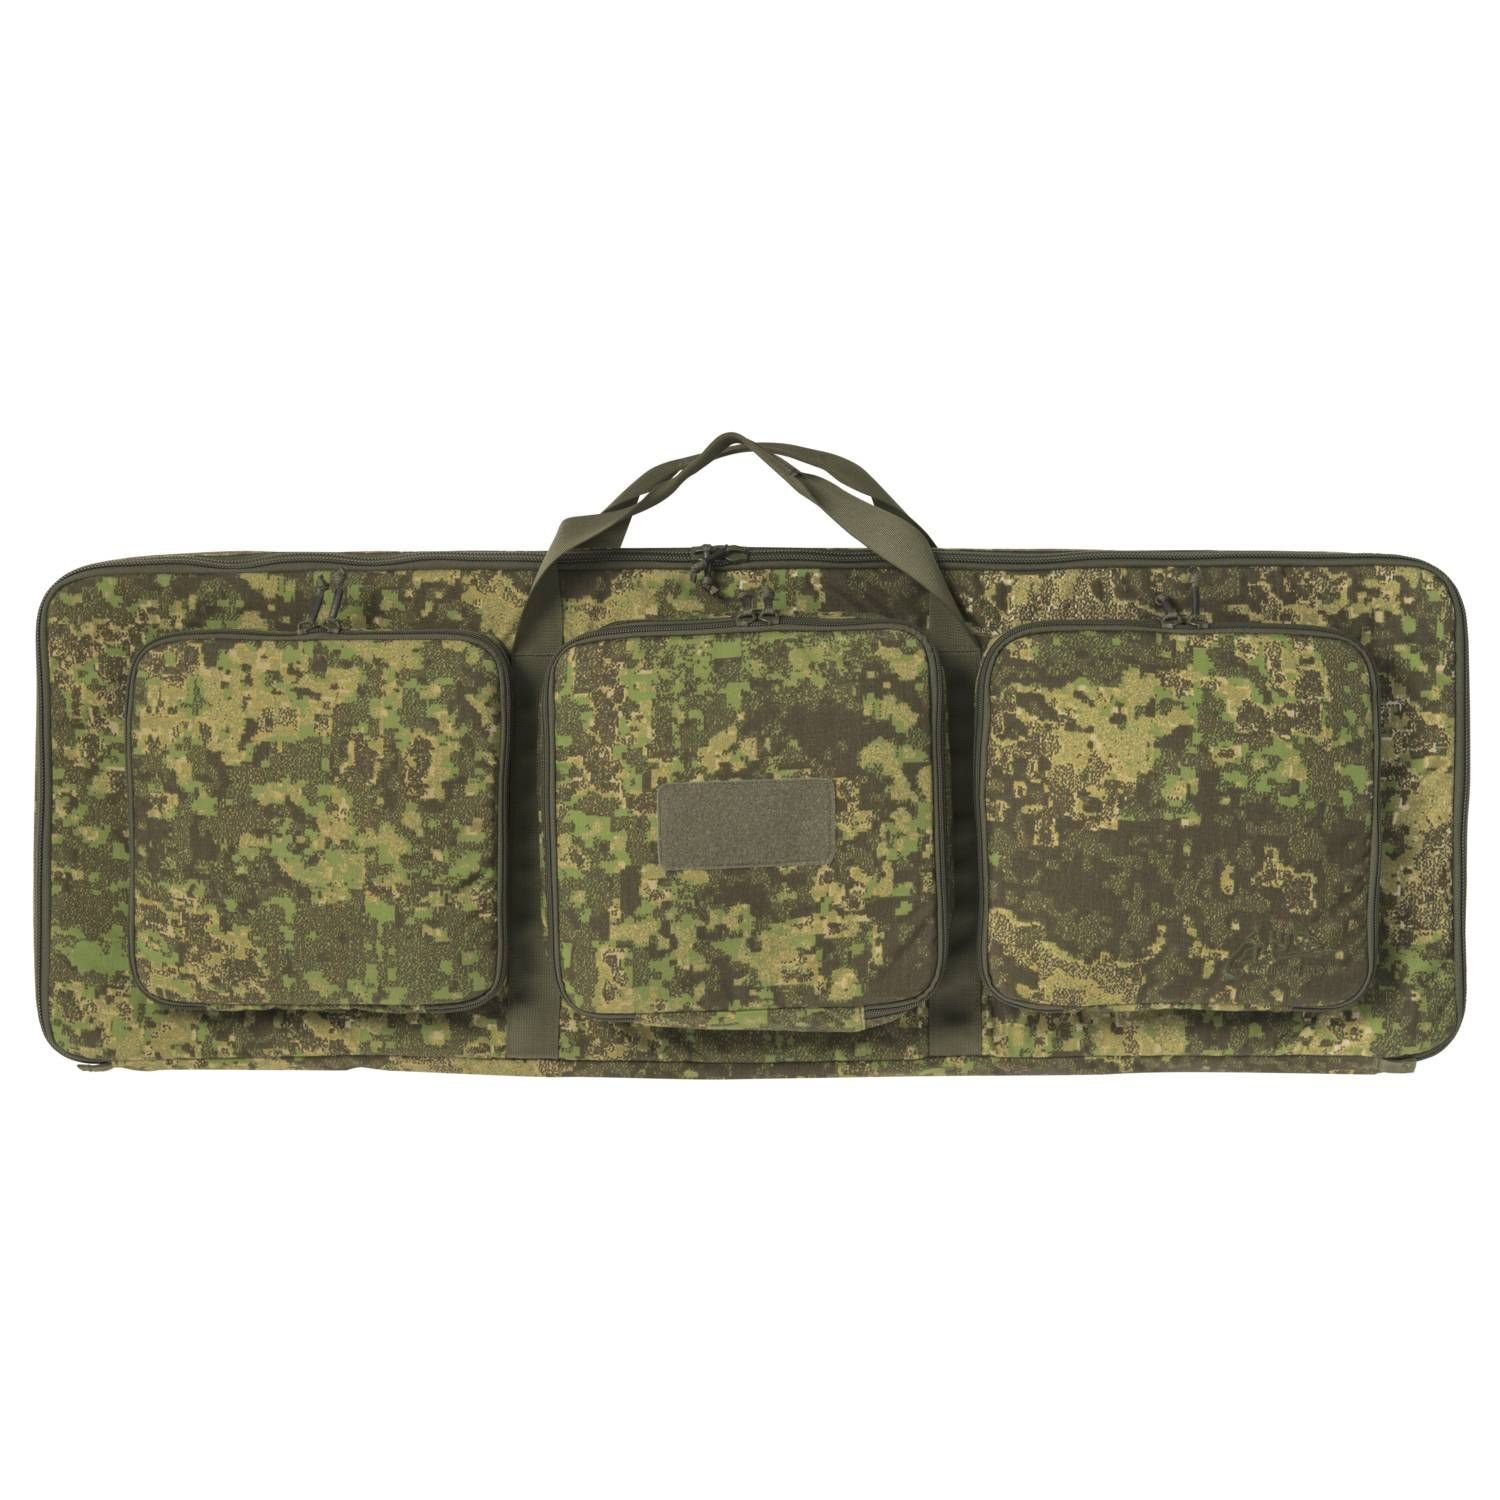 Puzdro na pušku RIFLE BAG 18® PENCOTT® WILDWOOD™